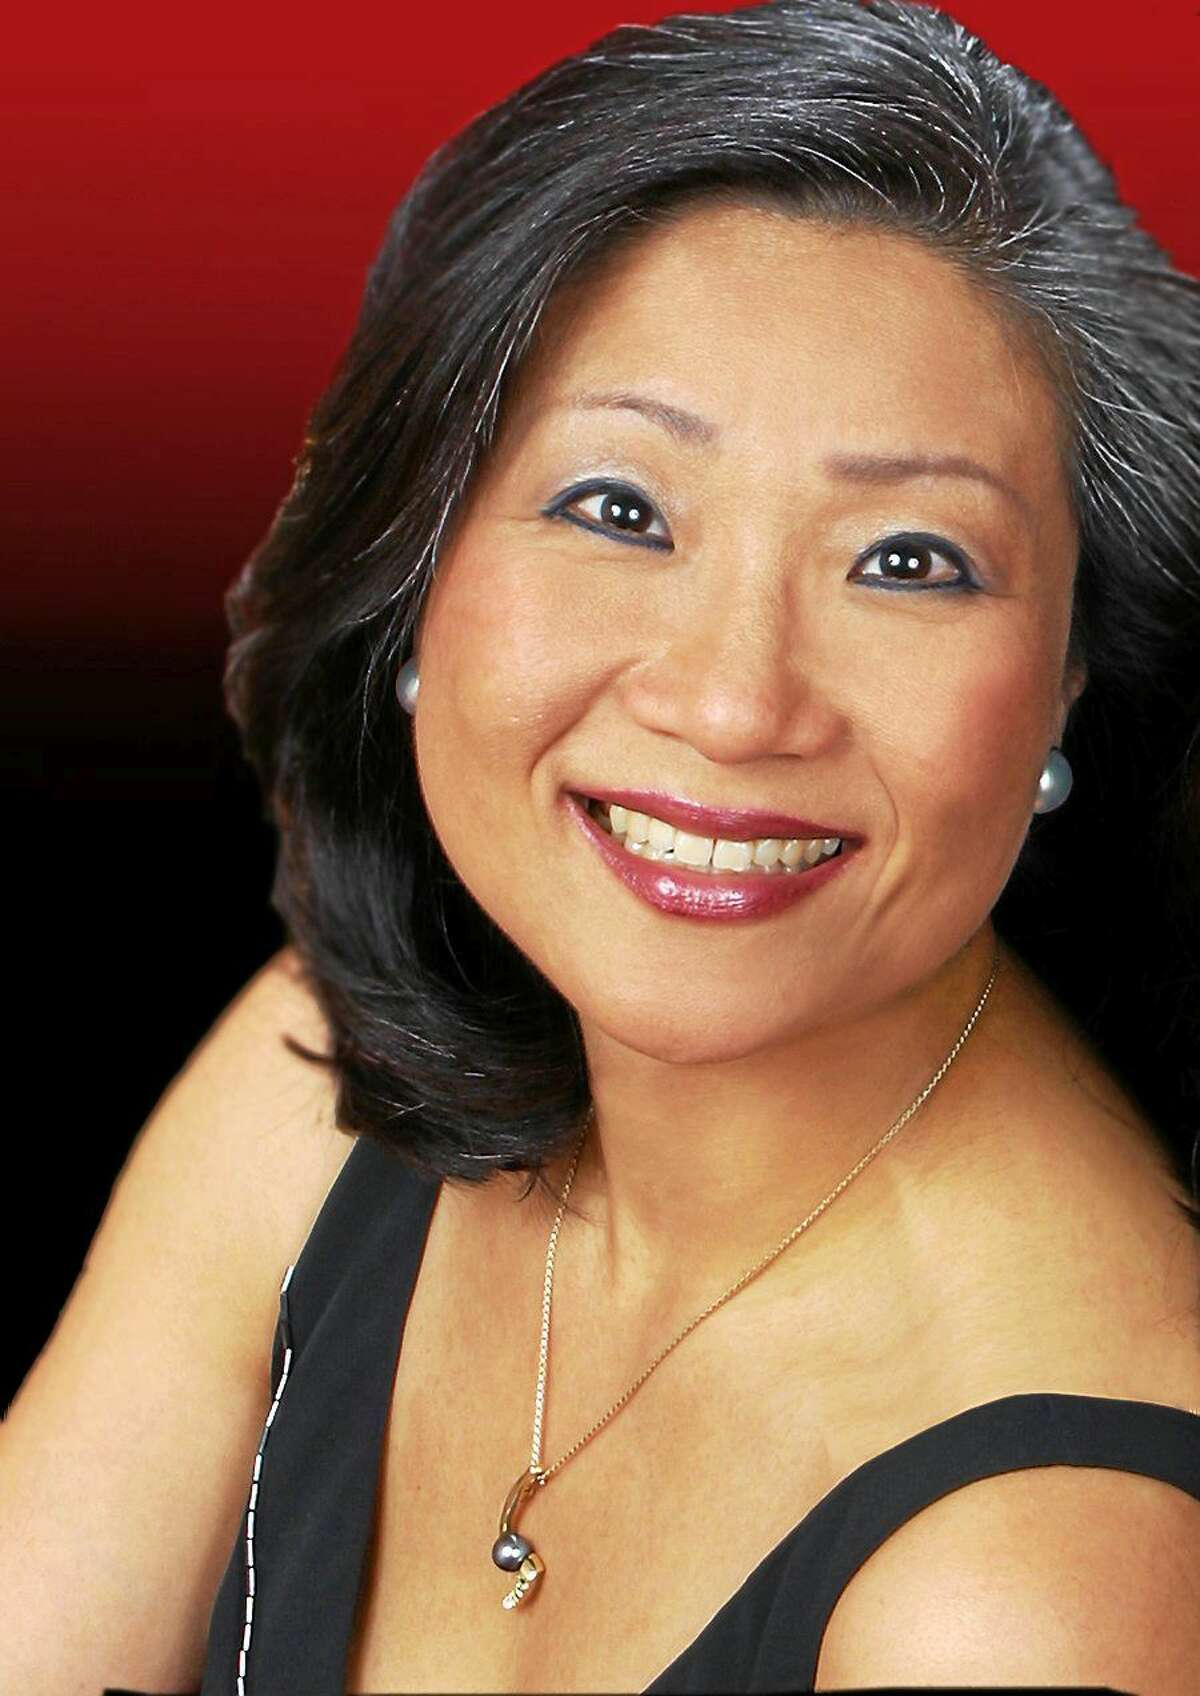 Submitted photo Mihae Lee, Artistic Director of the Essex Winter Series and a renowned concert pianist.